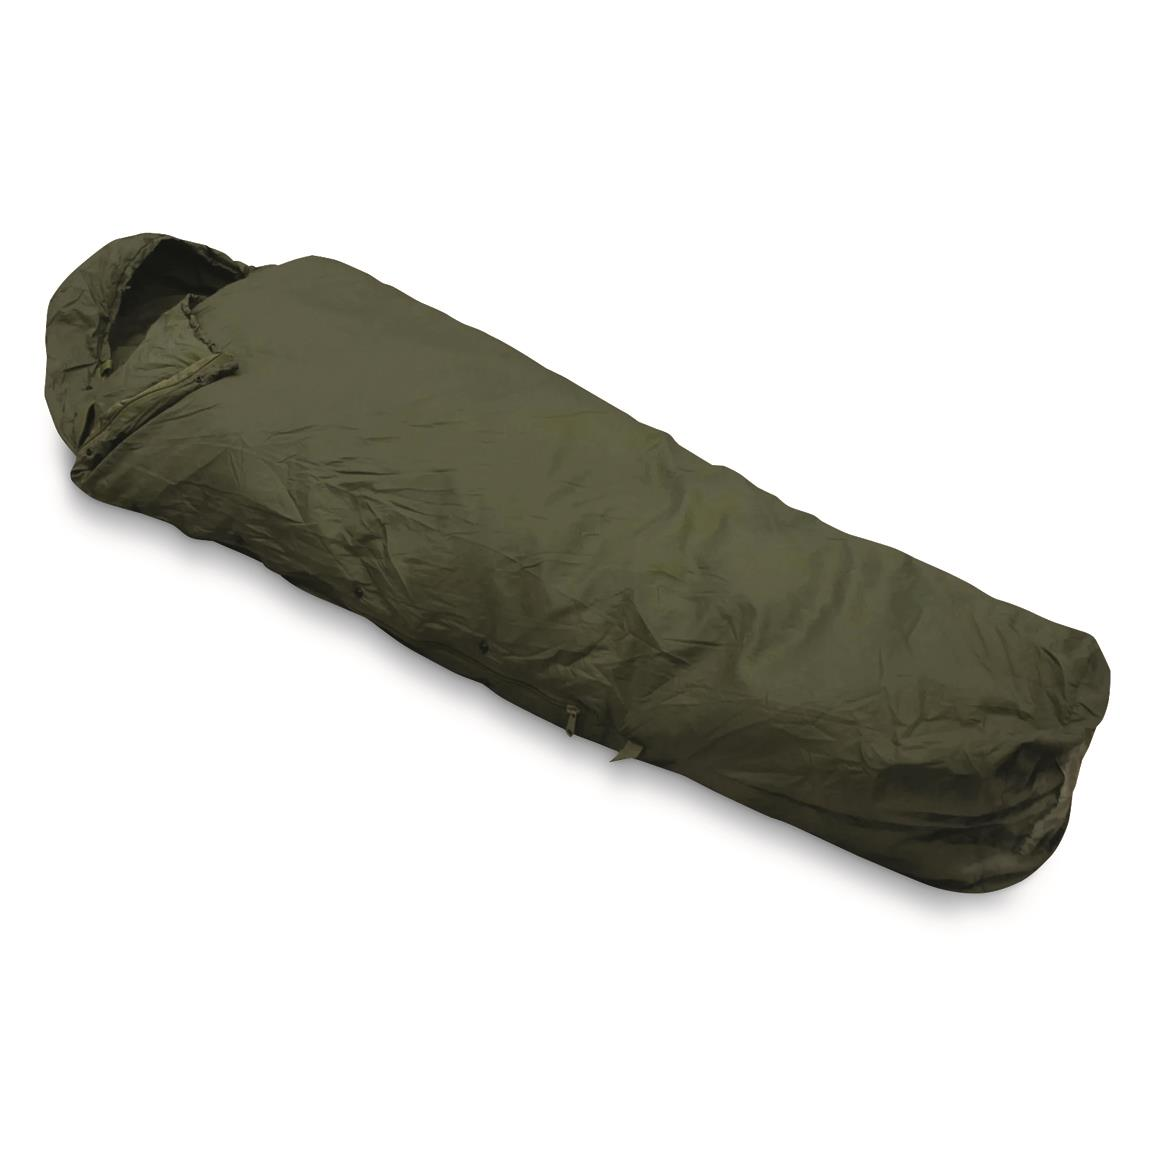 U.S. Military Surplus Patrol Sleeping Bag, Used